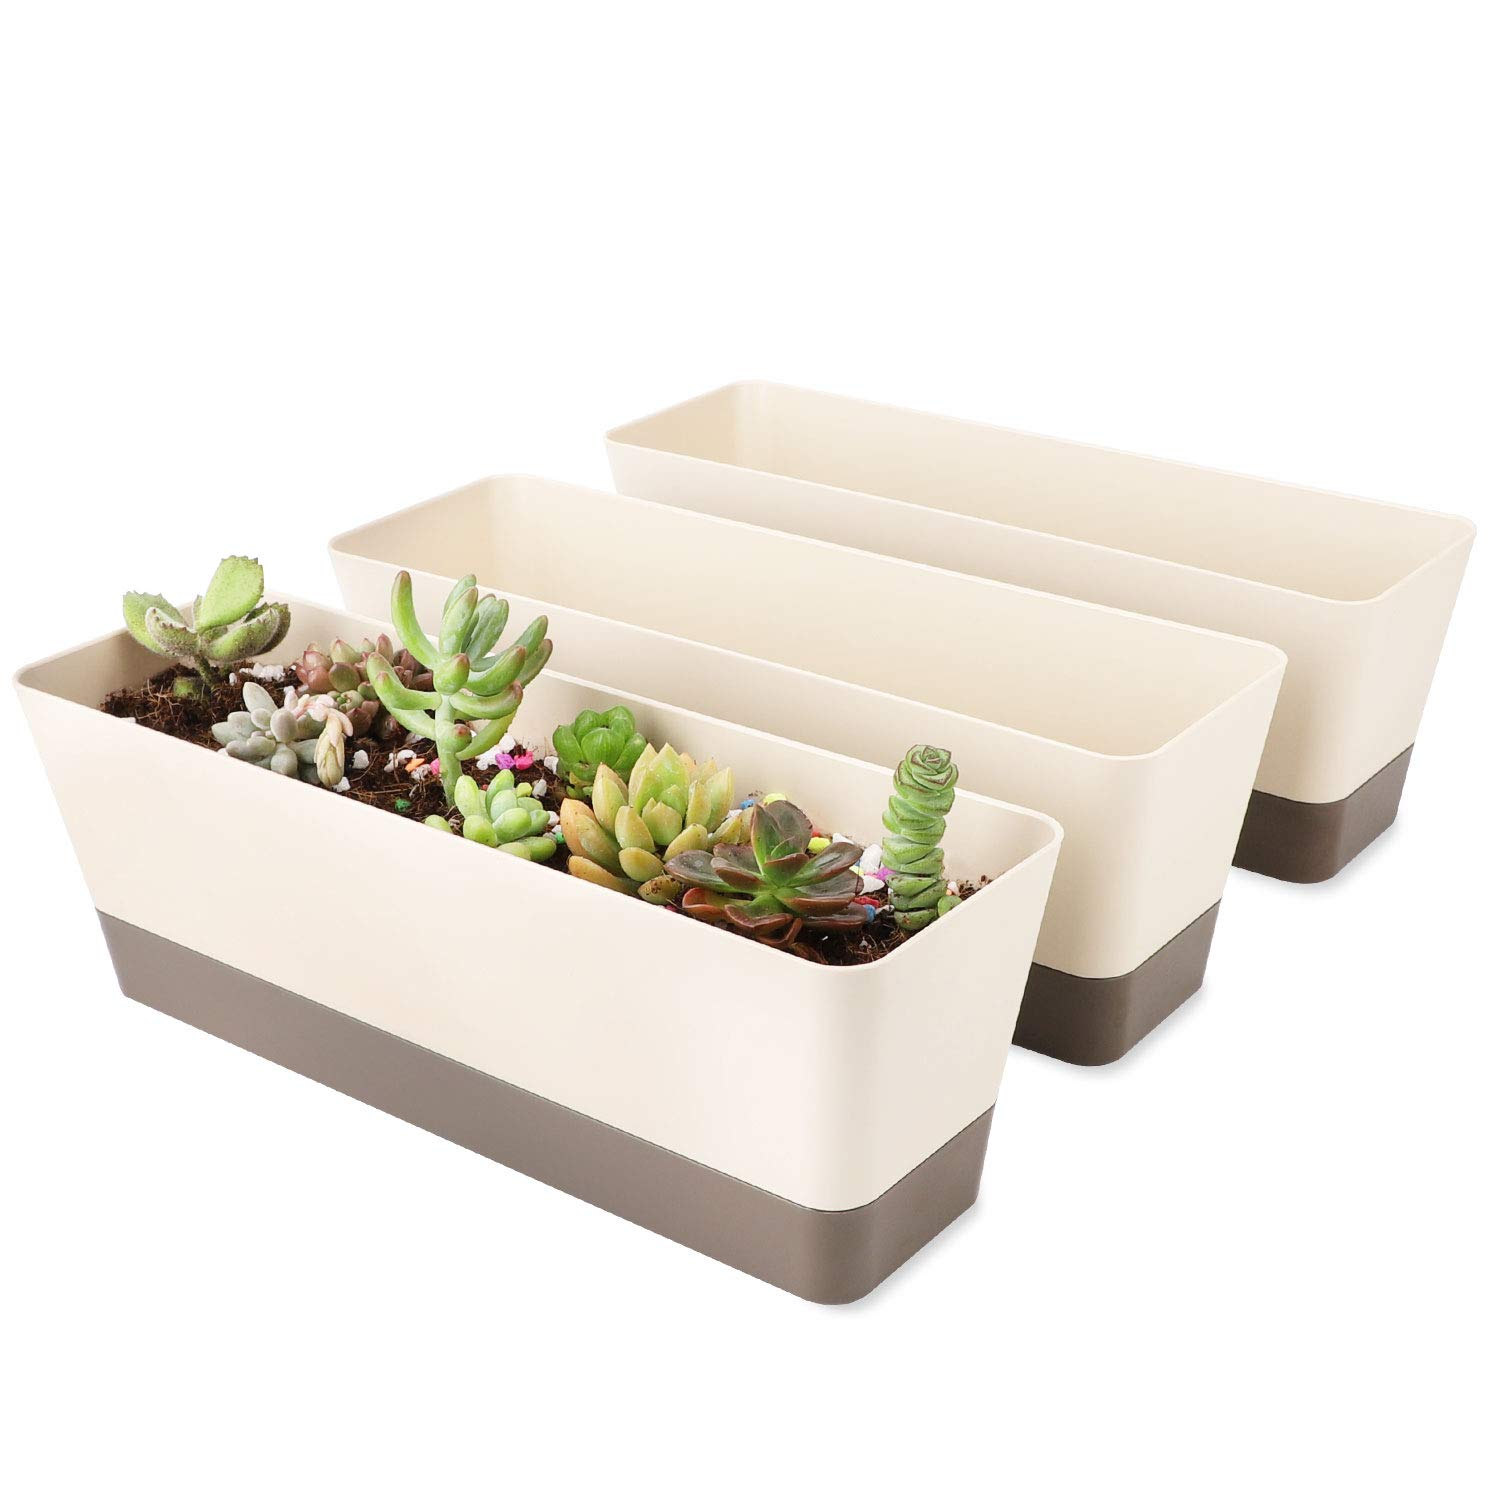 """Rectangle Planter for Plants, Suream 3 Packs 12"""" Modern Small Succulent Cactus Window Boxes with Saucer Plastic Plant Containers for Windowsill, Garden Balcony, Home Office Indoor Outdoor Decoration"""